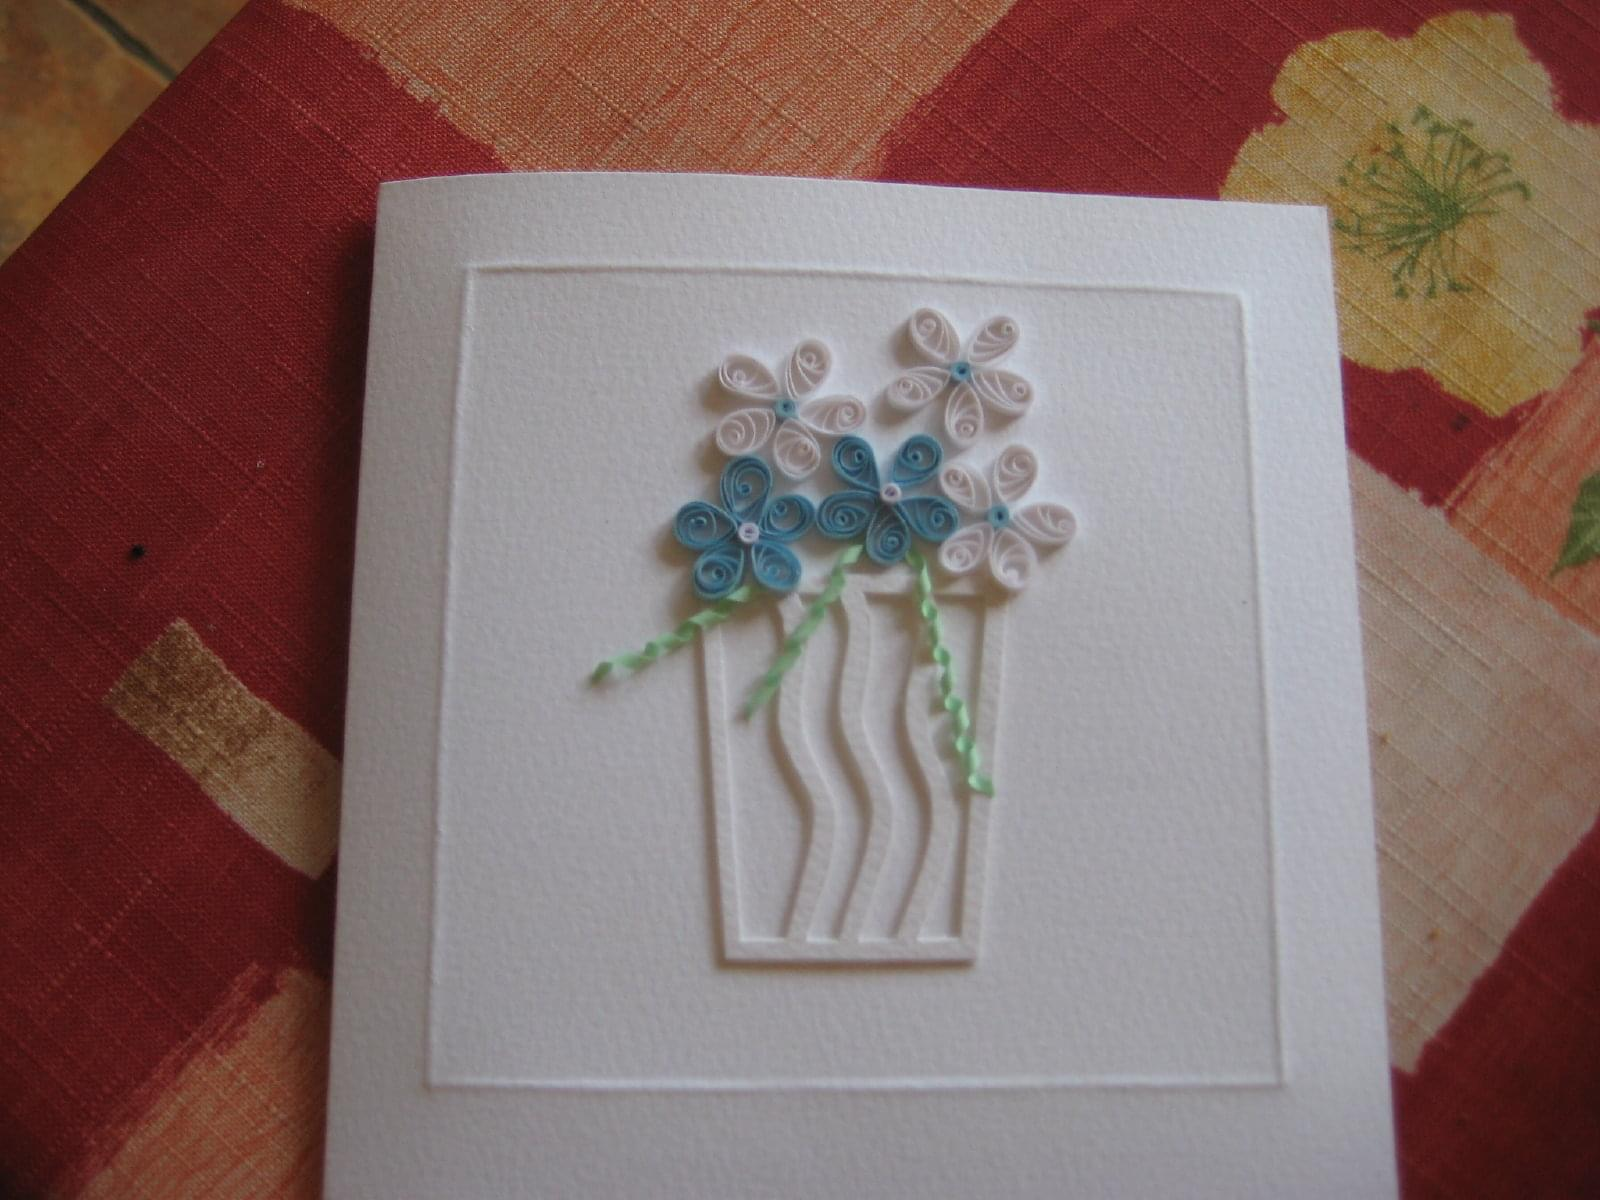 Free Quilling Patterns and Designs - Squidoo : Welcome to Squidoo